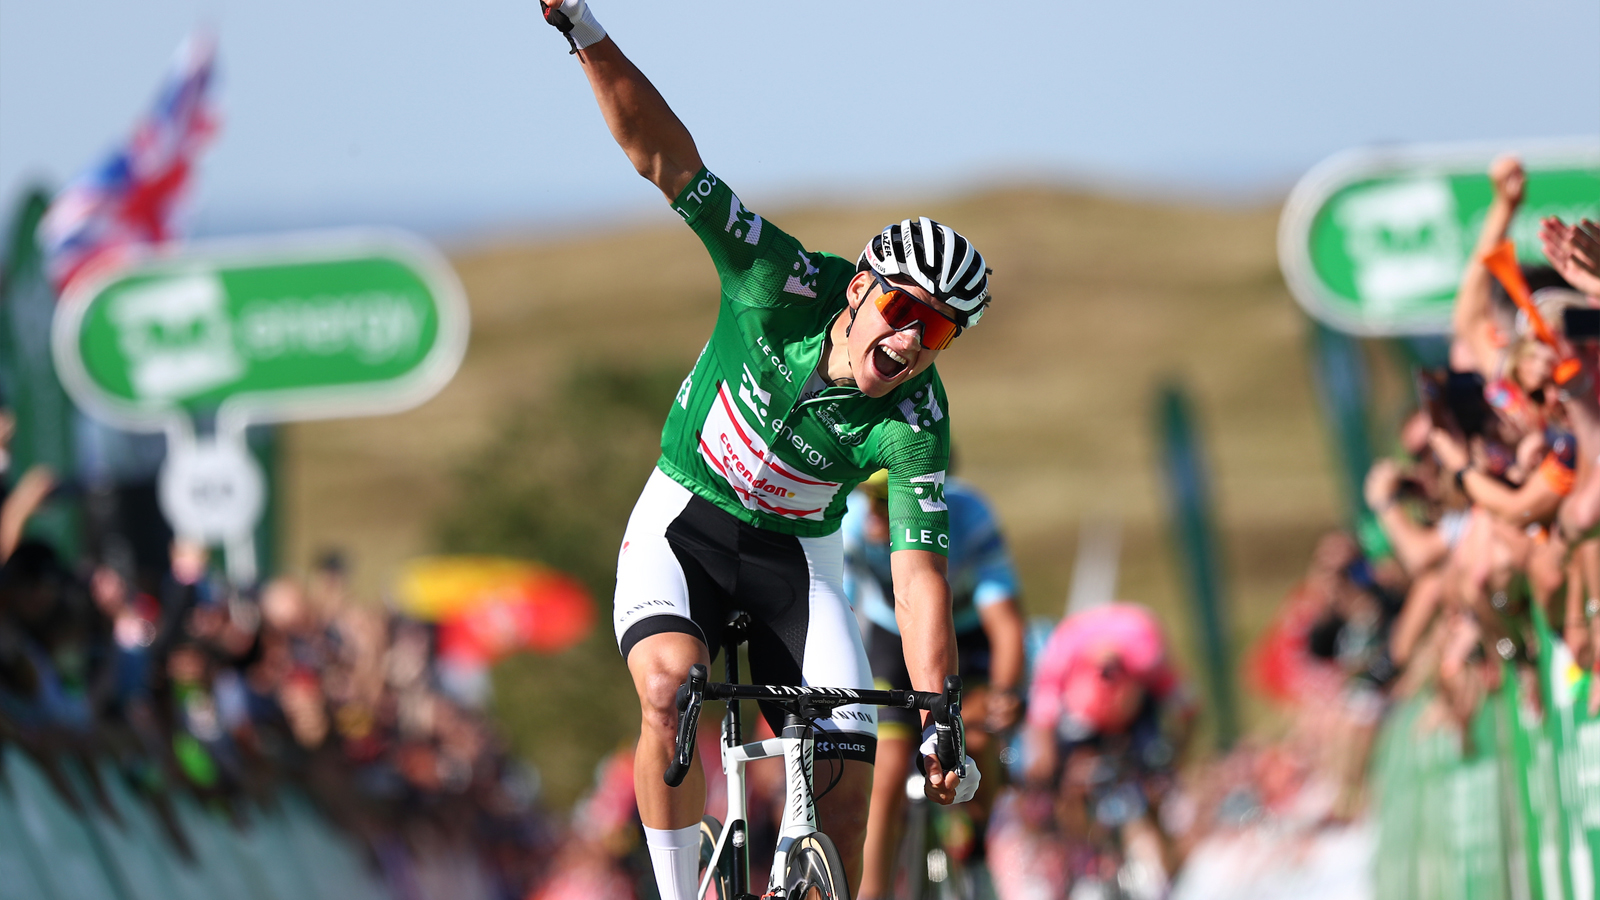 Mathieu van der Poel edges closer to OVO Energy Tour of Britain title with Warwickshire stage win - OVO Energy Tour of Britain